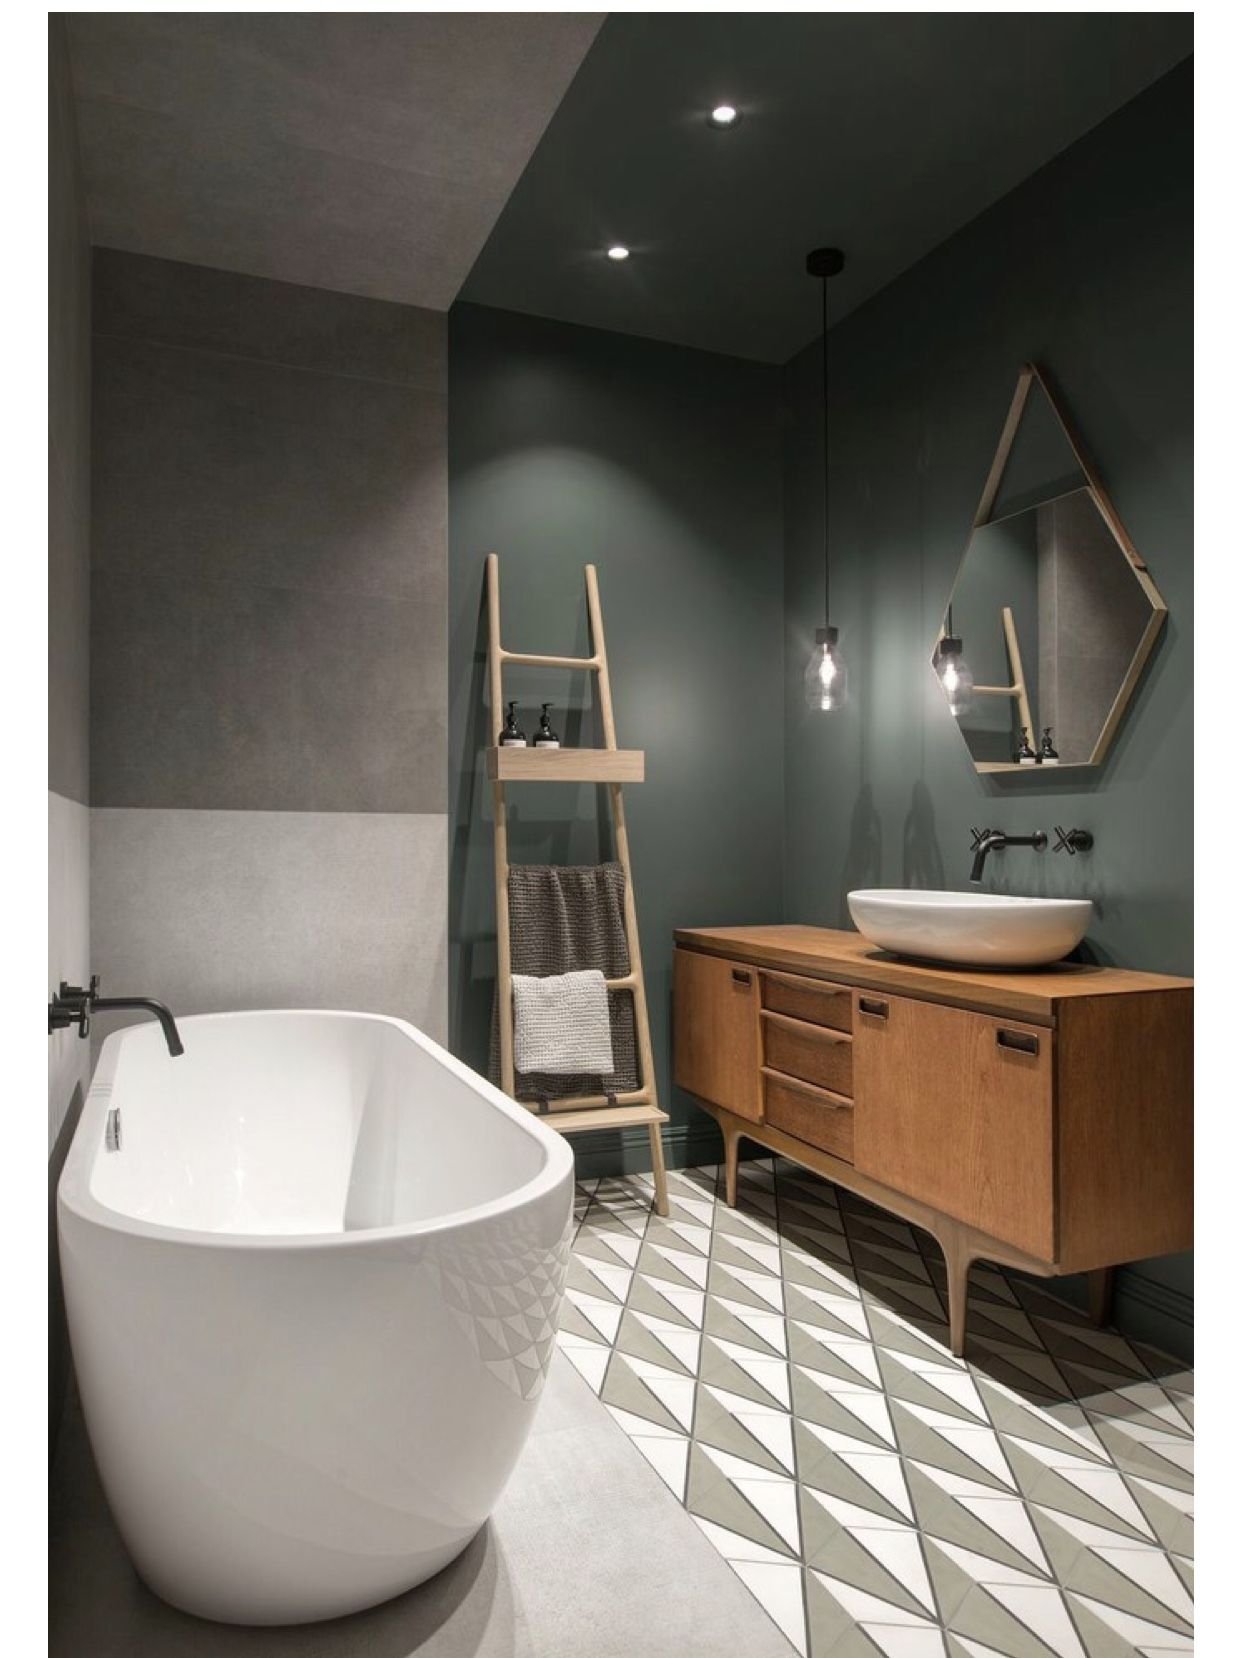 salle de bain minimaliste gares conception badkamer bathroom. Black Bedroom Furniture Sets. Home Design Ideas